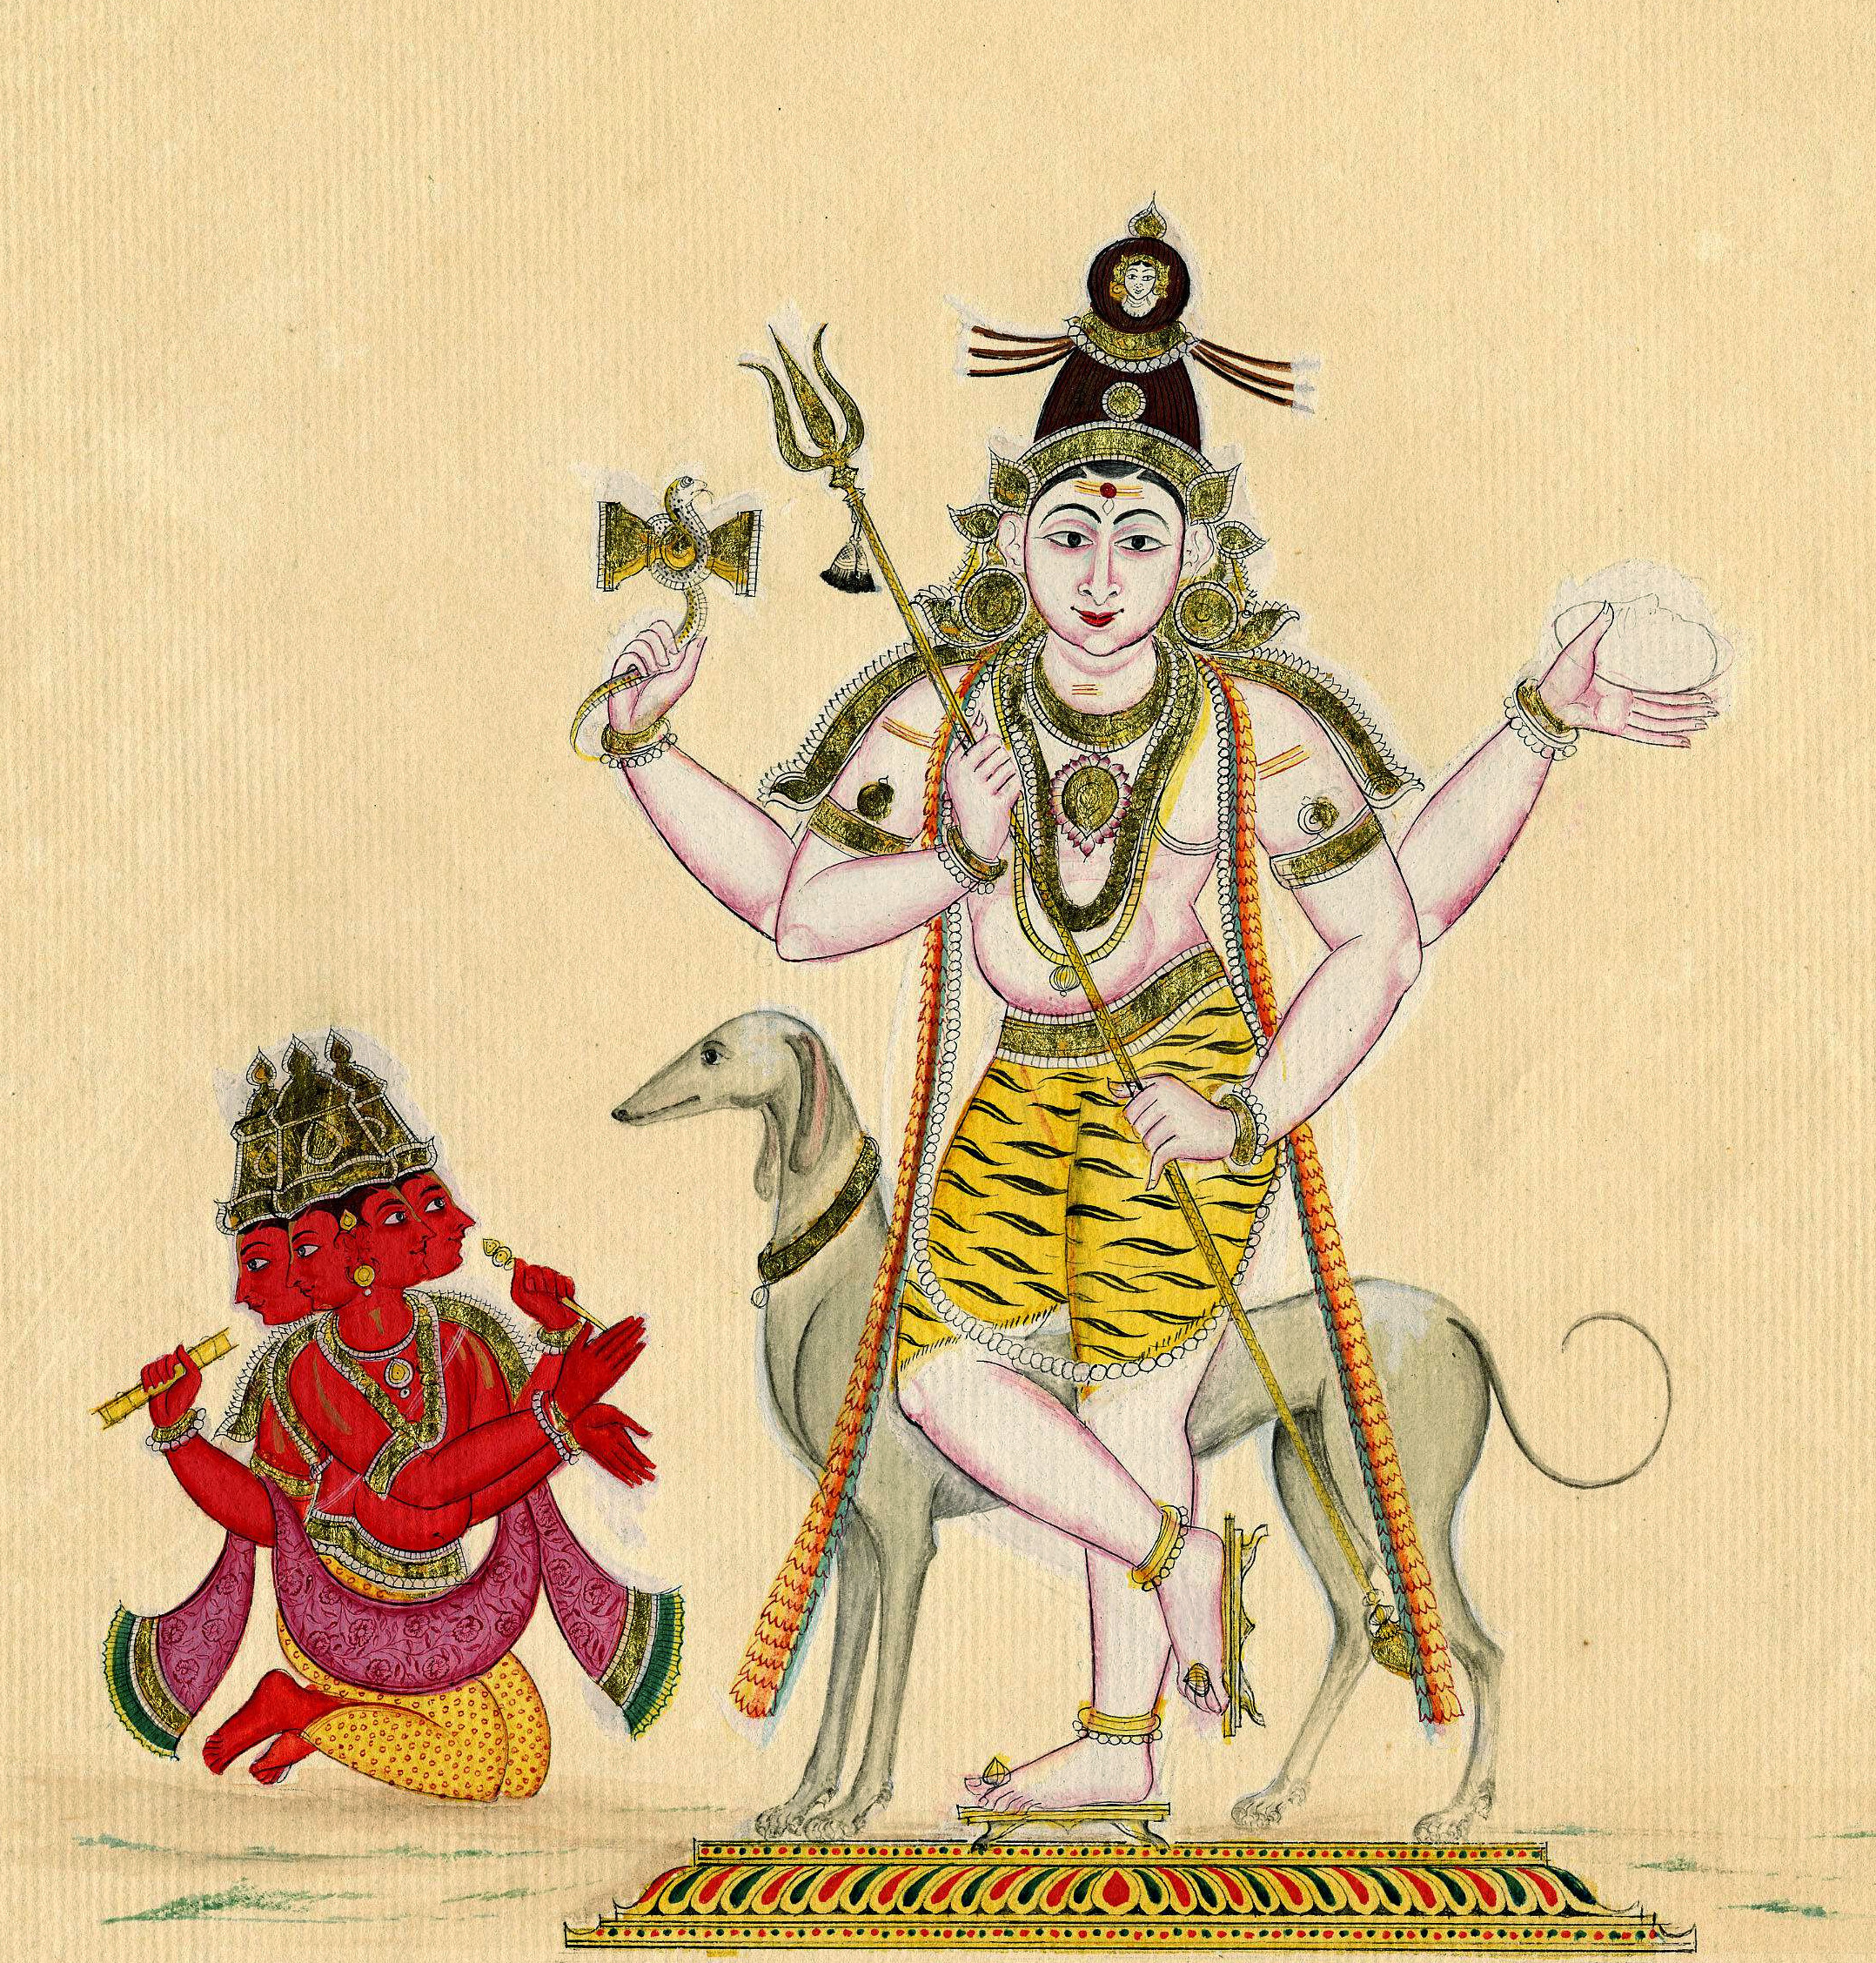 Lord Shiva Animated Wallpaper Bhairava Ashtami Wikipedia